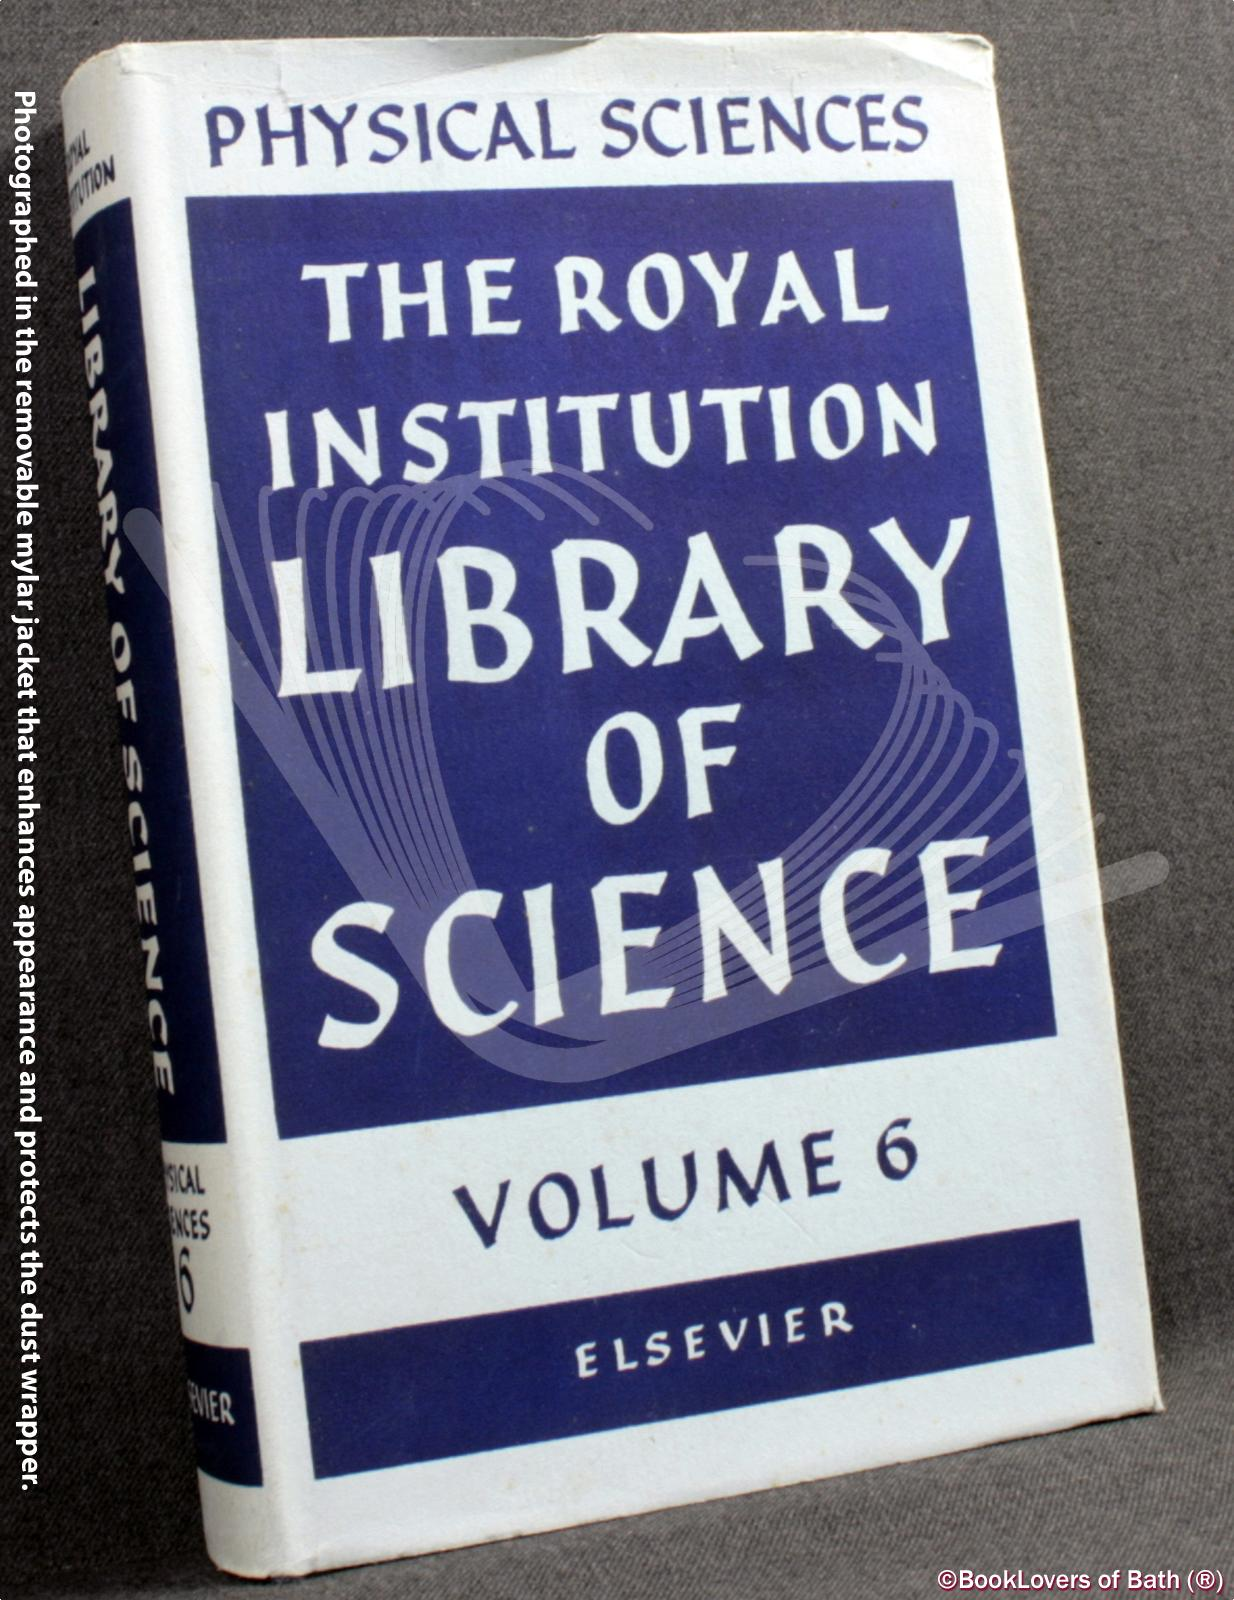 Physical Sciences - Edited by Lawrence Bragg & George Porter